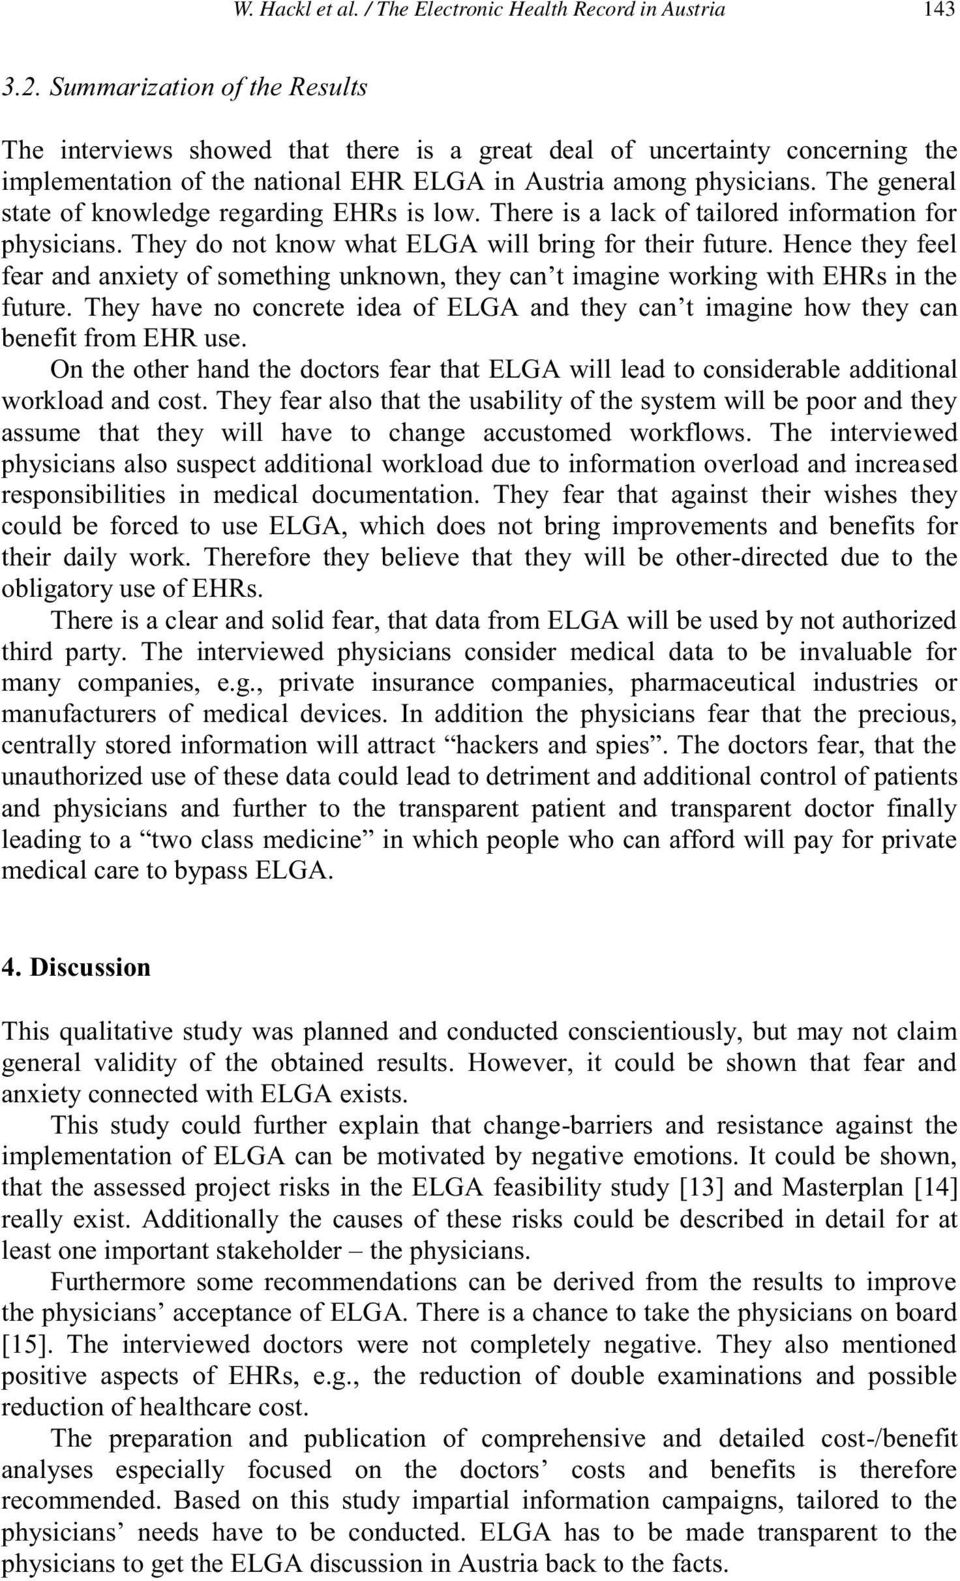 The general state of knowledge regarding EHRs is low. There is a lack of tailored information for physicians. They do not know what ELGA will bring for their future.